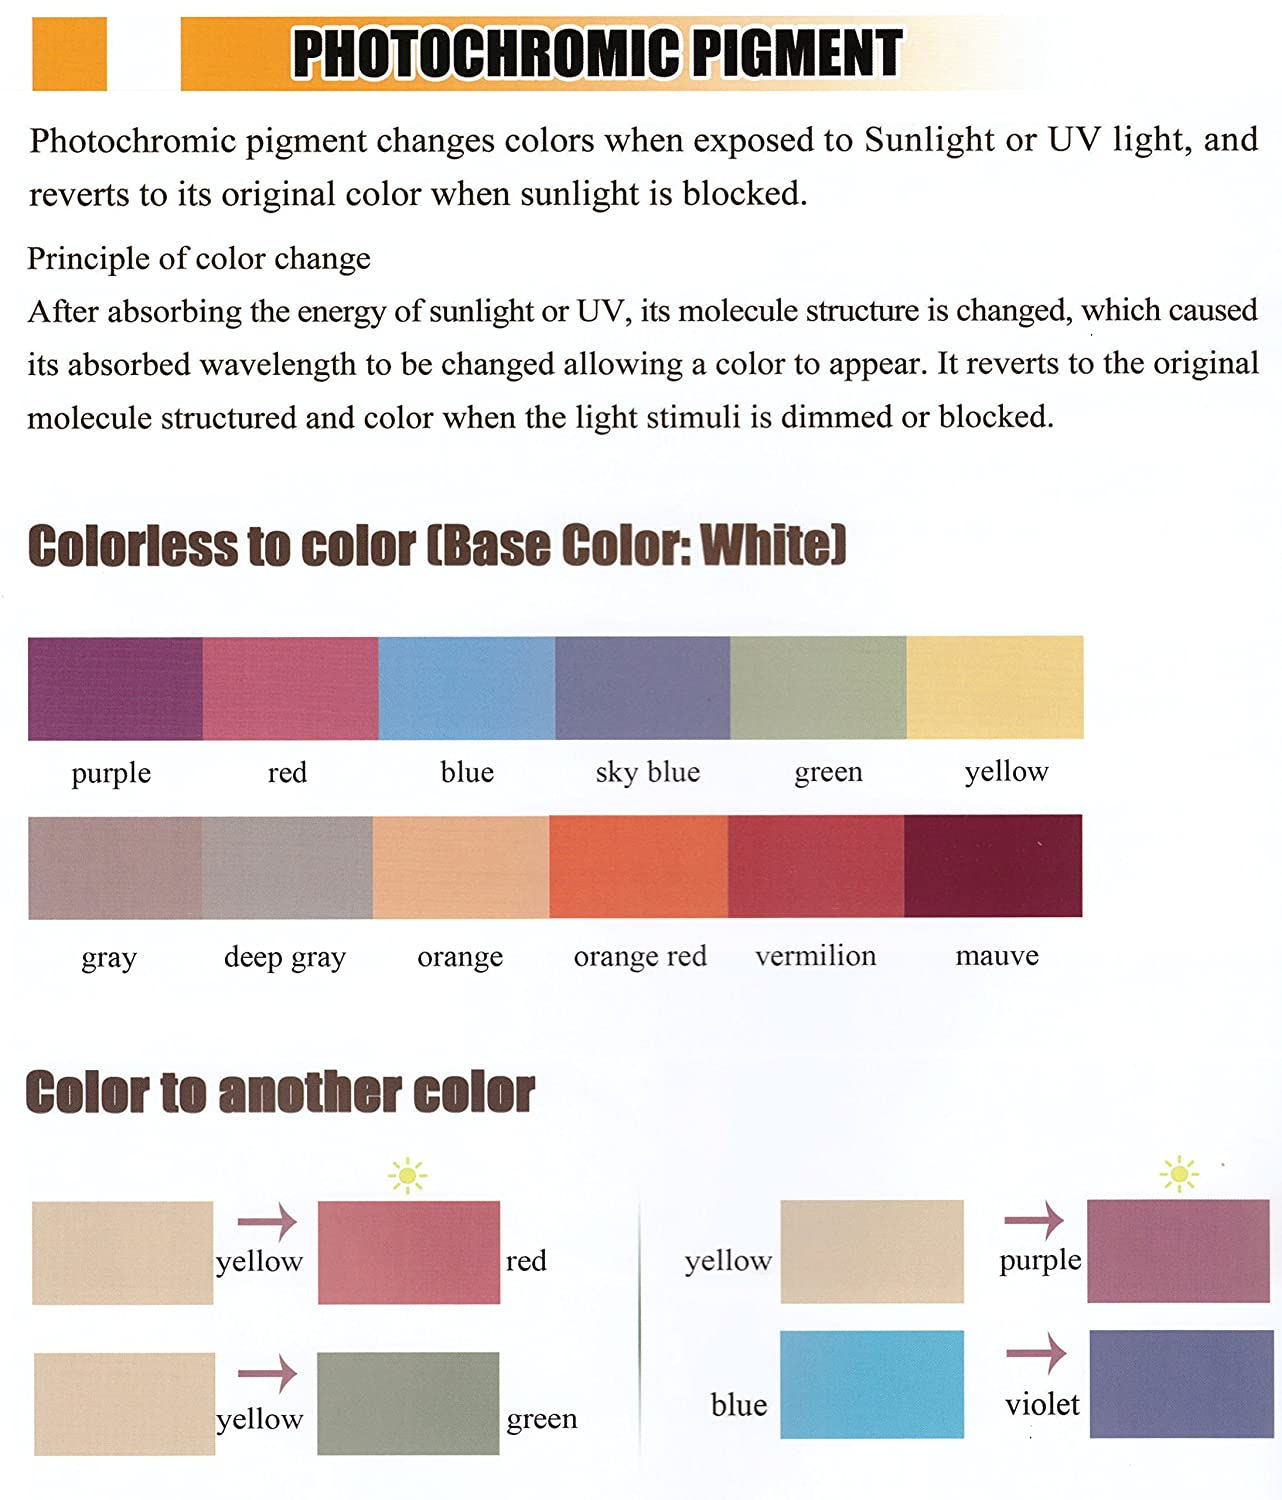 amazon com photochromic pigment that changes colors when exposed to